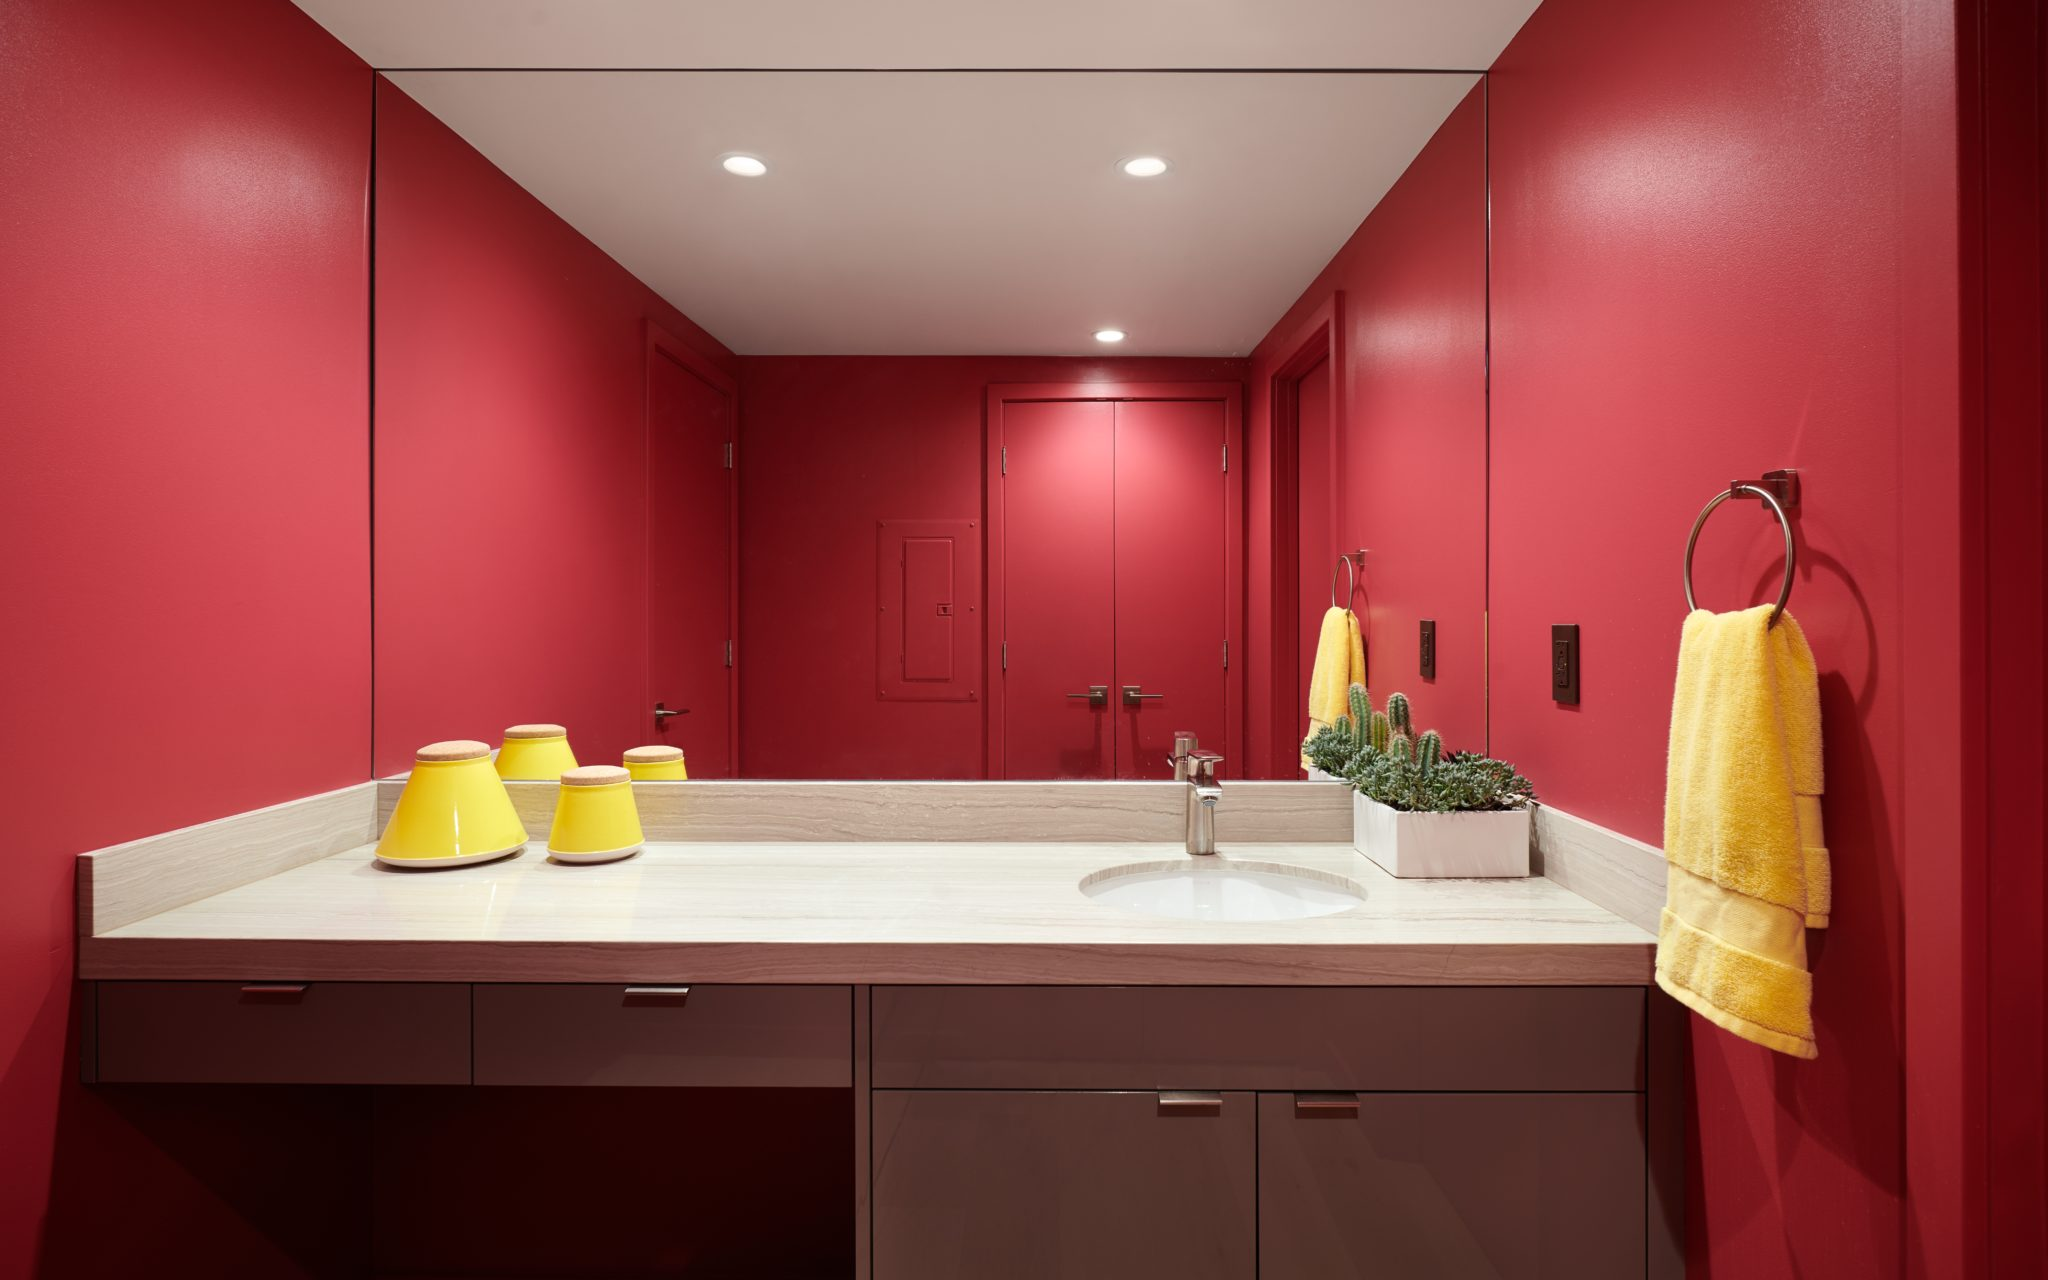 For the powder room, Mallon was inspired by saturated bathrooms of the San Francisco Museum of Modern Art (SFMOMA). The hue is Aniline Red fromBenjamin Moore & Co.